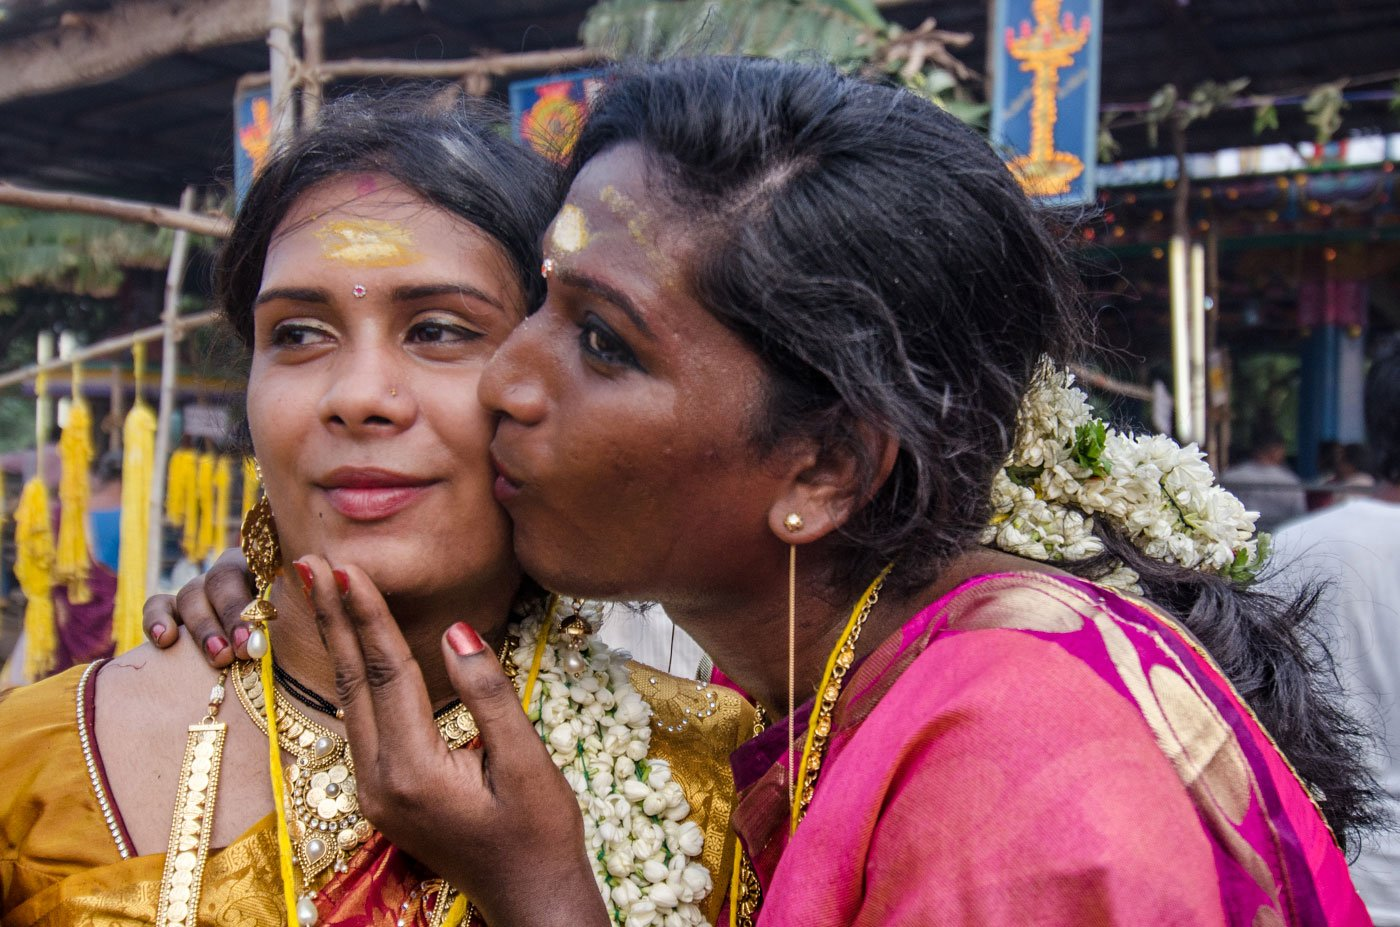 Once they've tied the knot, the aravanis rejoice. Pinky (right), in a gleeful moment, kisses her best friend and sister bride Mala. A transgender woman kisses another transgender woman on the cheek.